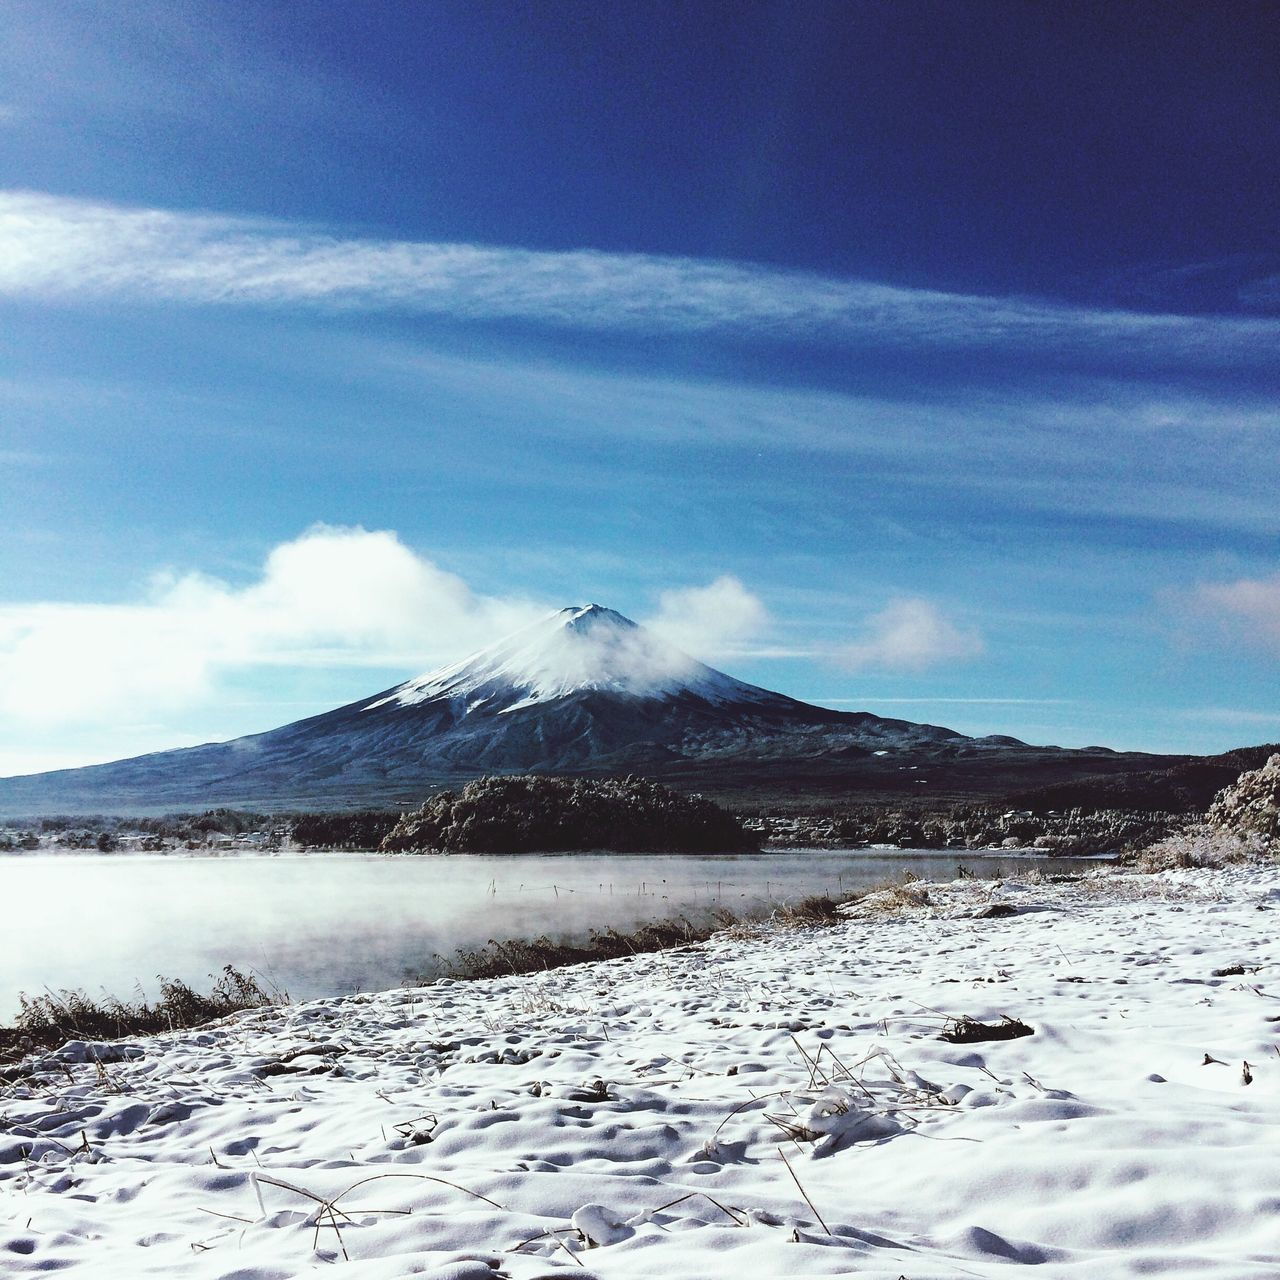 Snow Mountain Cold Temperature Nature Snowcapped Mountain Beauty In Nature Winter Landscape Scenics Sky Tranquility Blue Tranquil Scene Non-urban Scene Physical Geography Idyllic No People Outdoors Cloud - Sky Day Japan Fuji